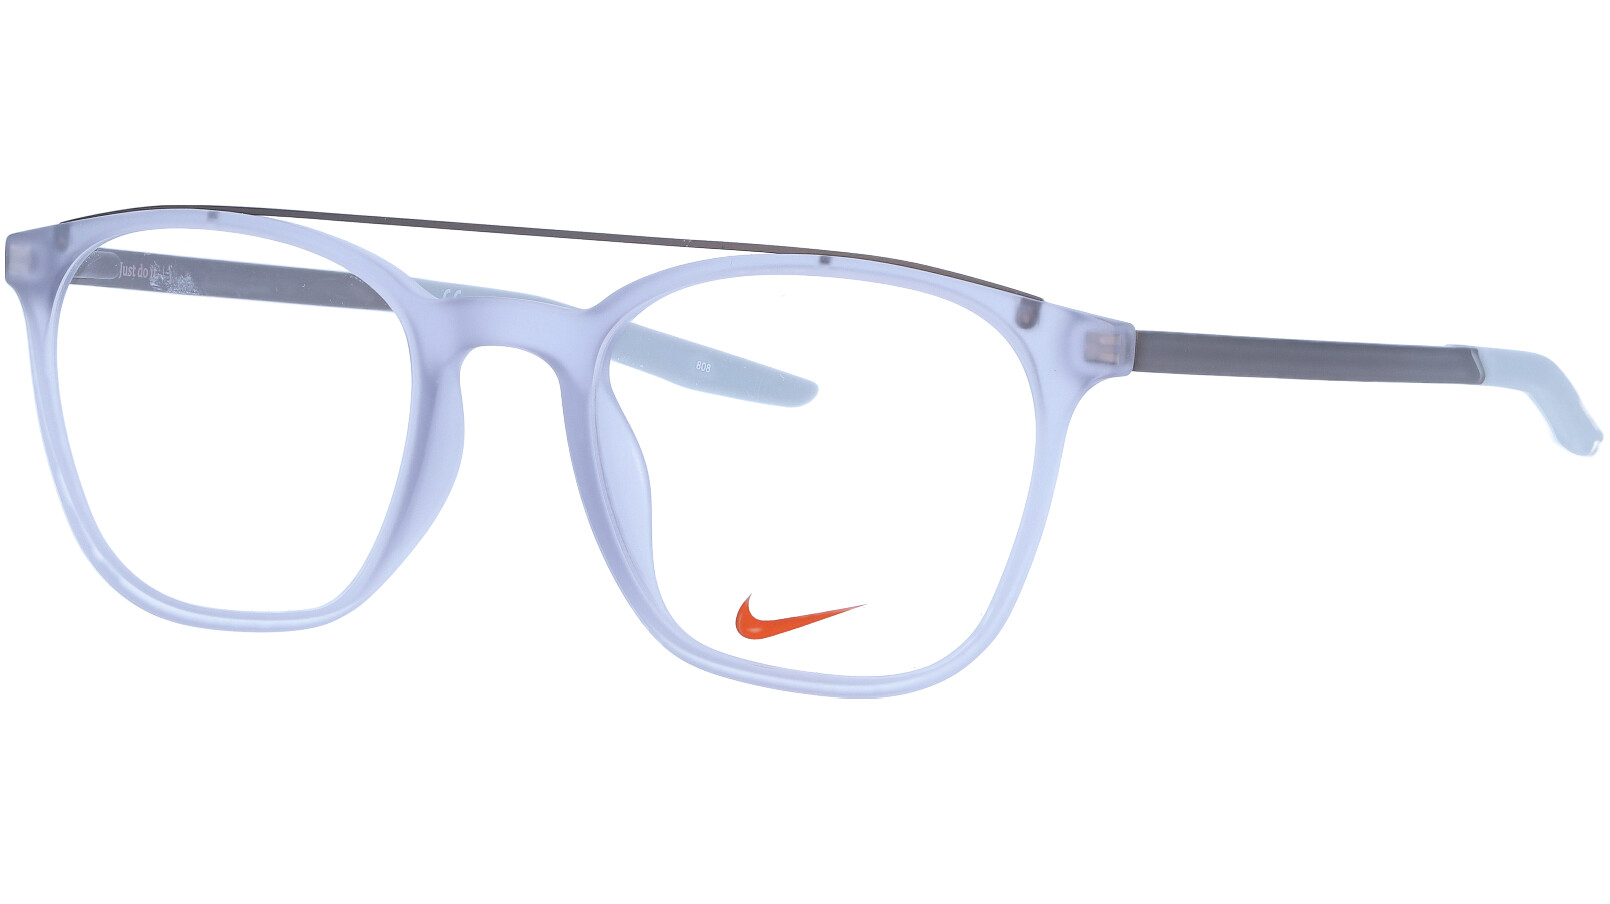 NIKE NIKE7281 032 50 GREY Glasses